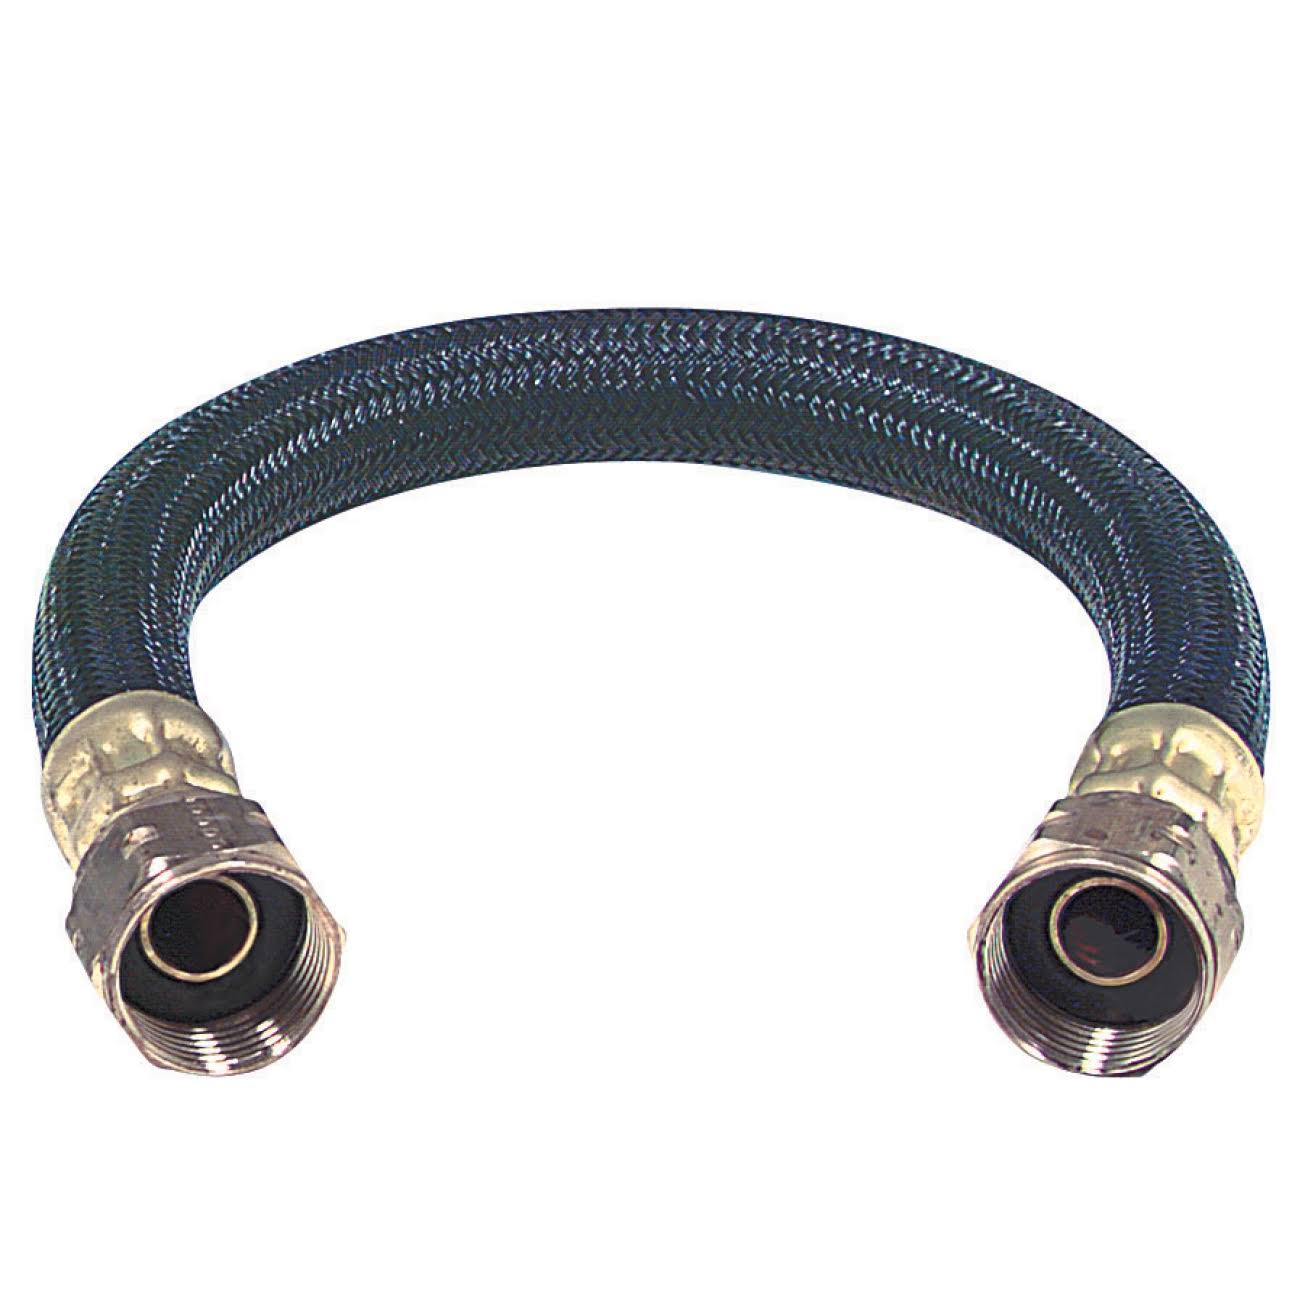 Brass Craft Bwb024 Polymer Braid Water Heater Connector - 24""